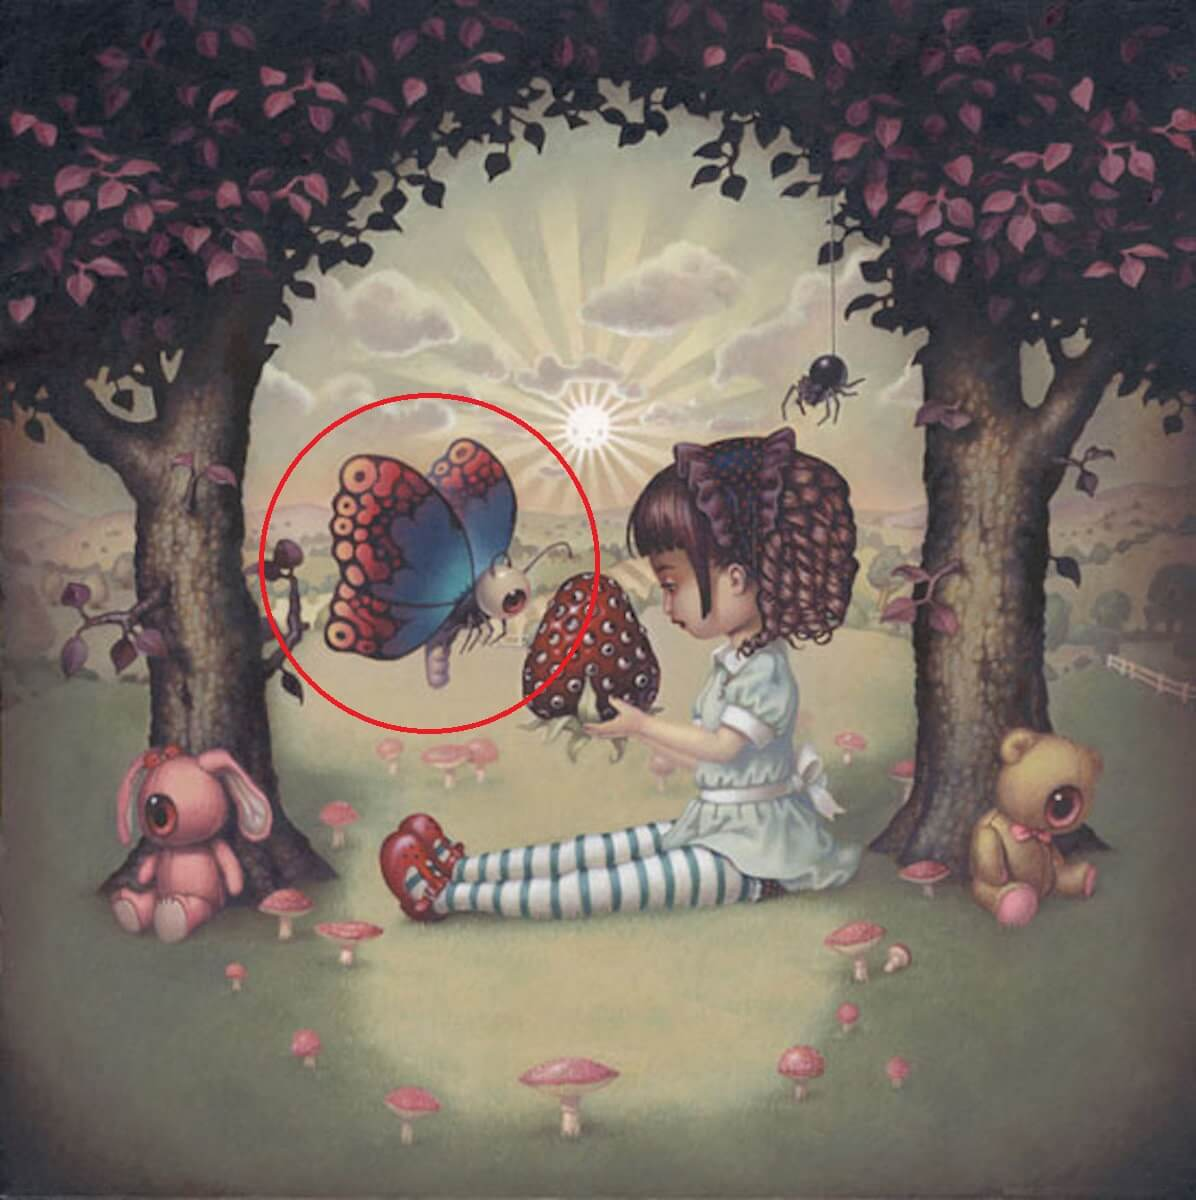 The First Thing That You Notice On This Picture Shows Your Hidden Fear - Butterfly